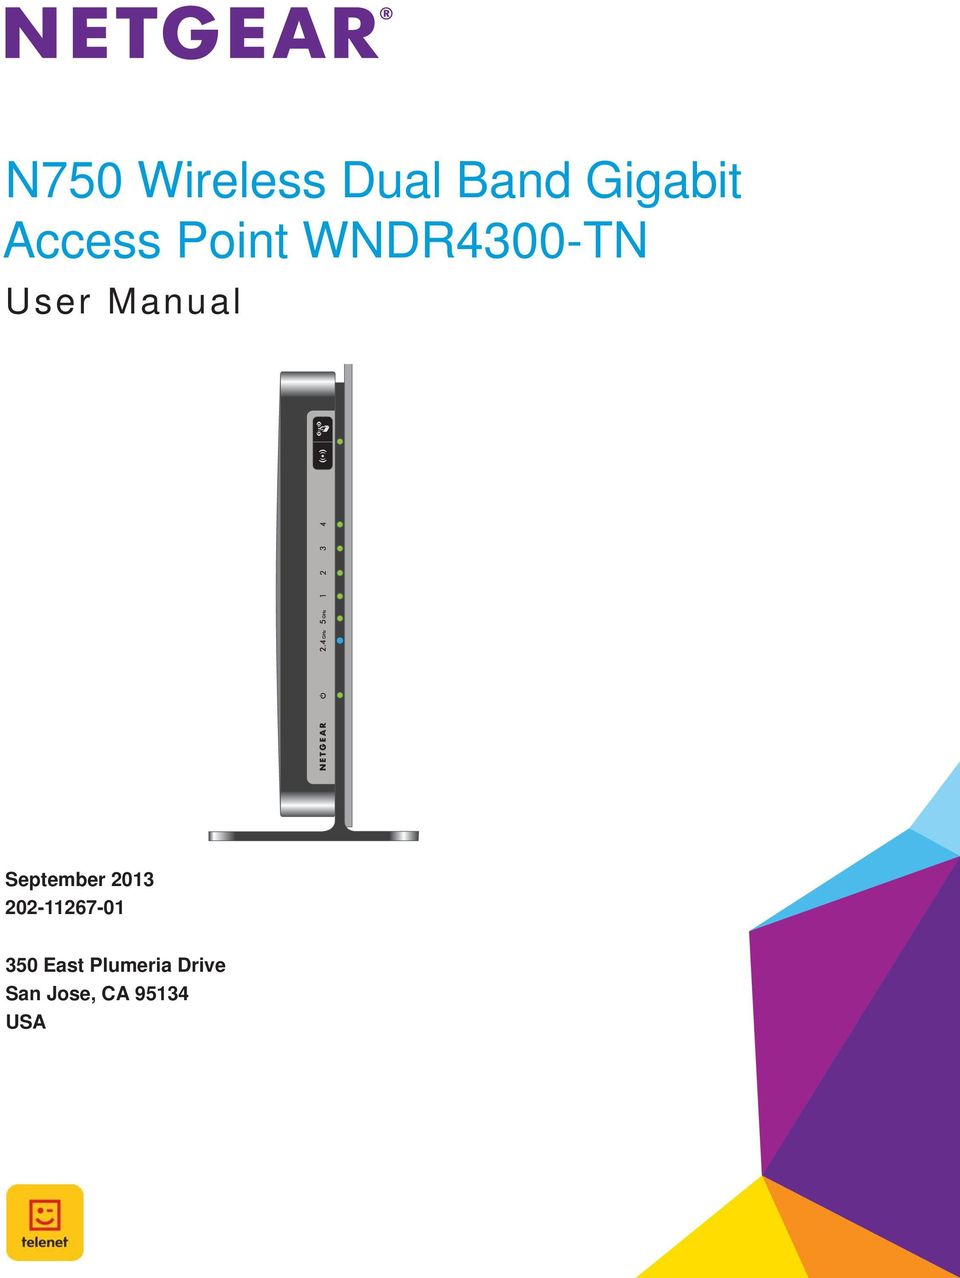 N750 Wireless Dual Band Gigabit Access Point WNDR4300-TN - PDF